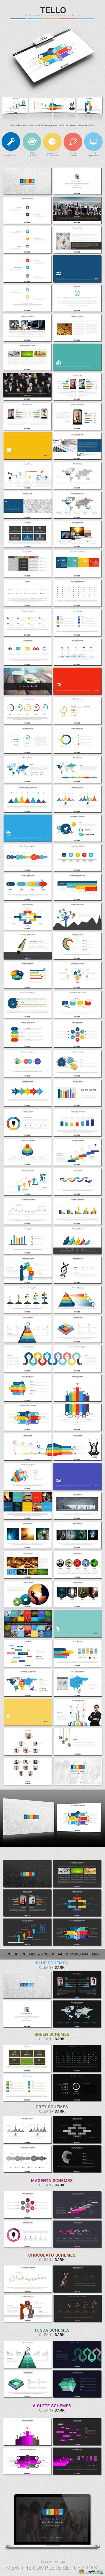 Tello Powerpoint Template